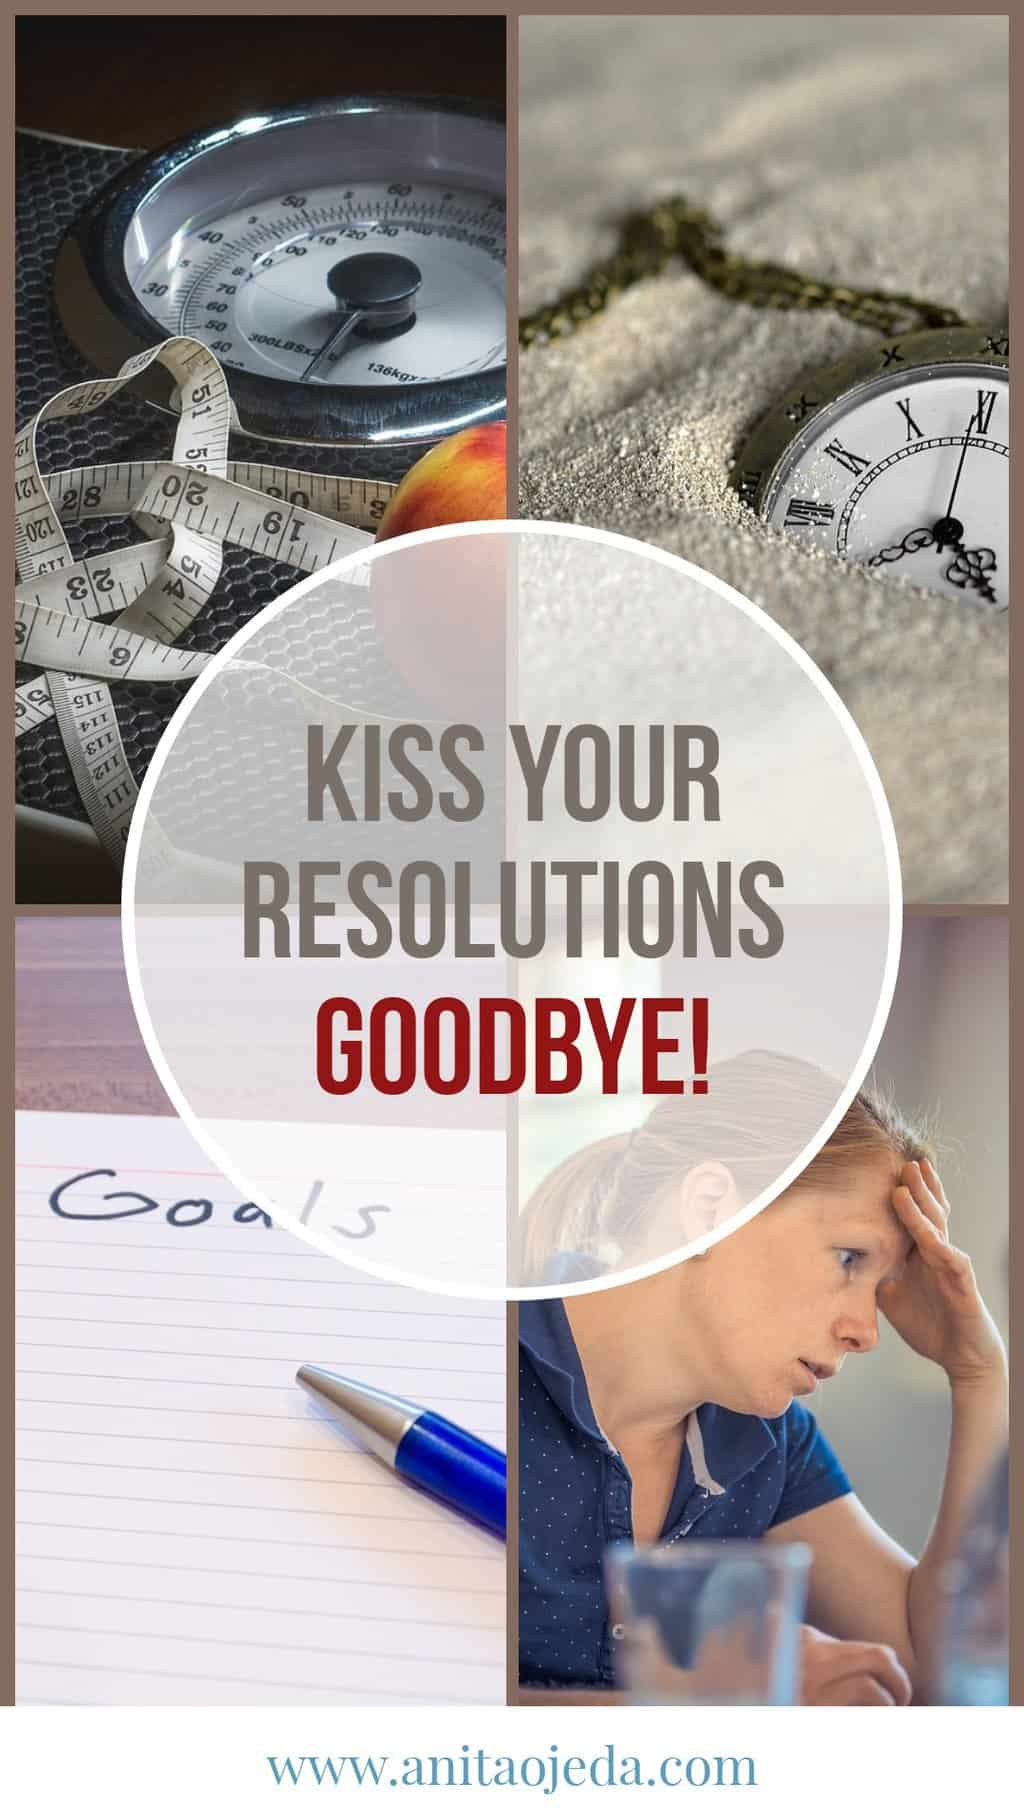 December is a great time to start preparing for the New Year. No, NOT by making a giant list of New Year's resolutions. Instead, spend time this month exploring changes you'd like to see in your life and use these six steps to make things happen. I promise, this process works better than a list of resolutions! #selfcare #resolutions #newyear